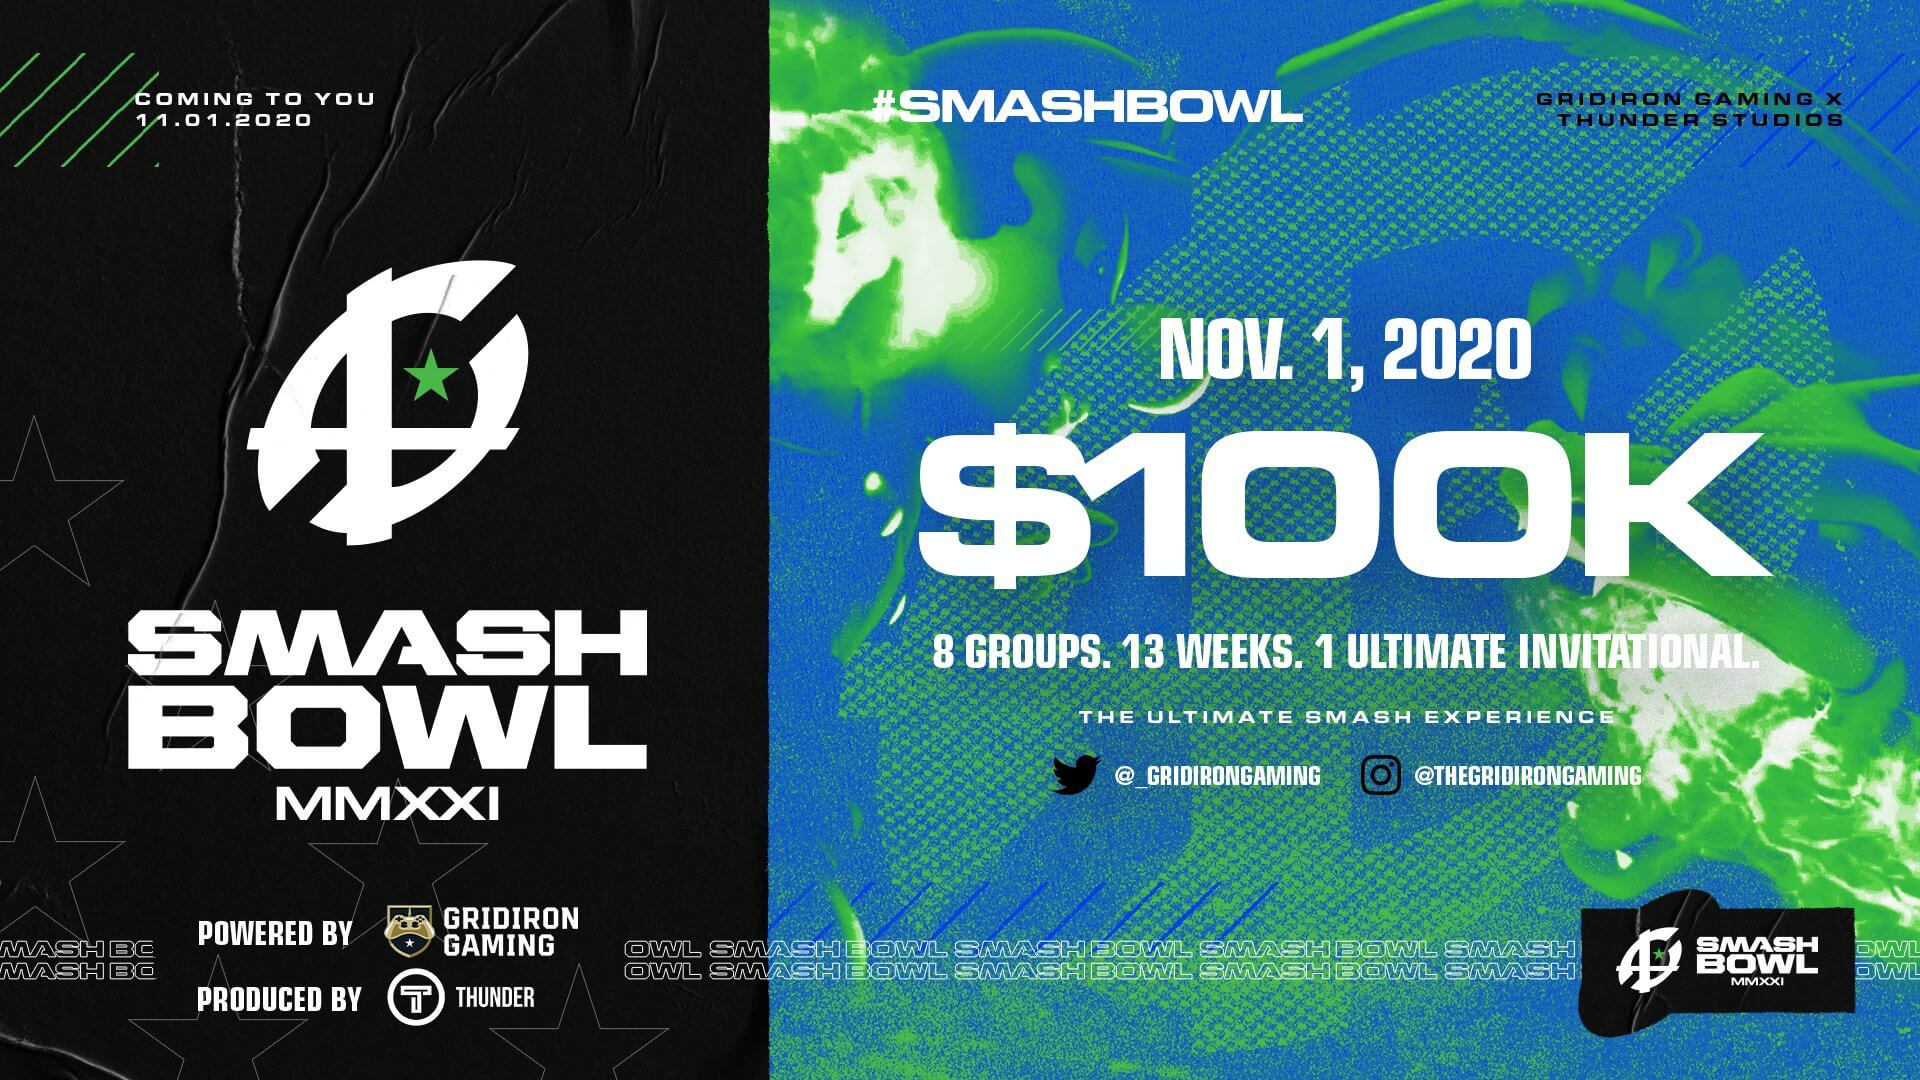 Smash Bowl MMXXI brings a new type of competition to SSBU